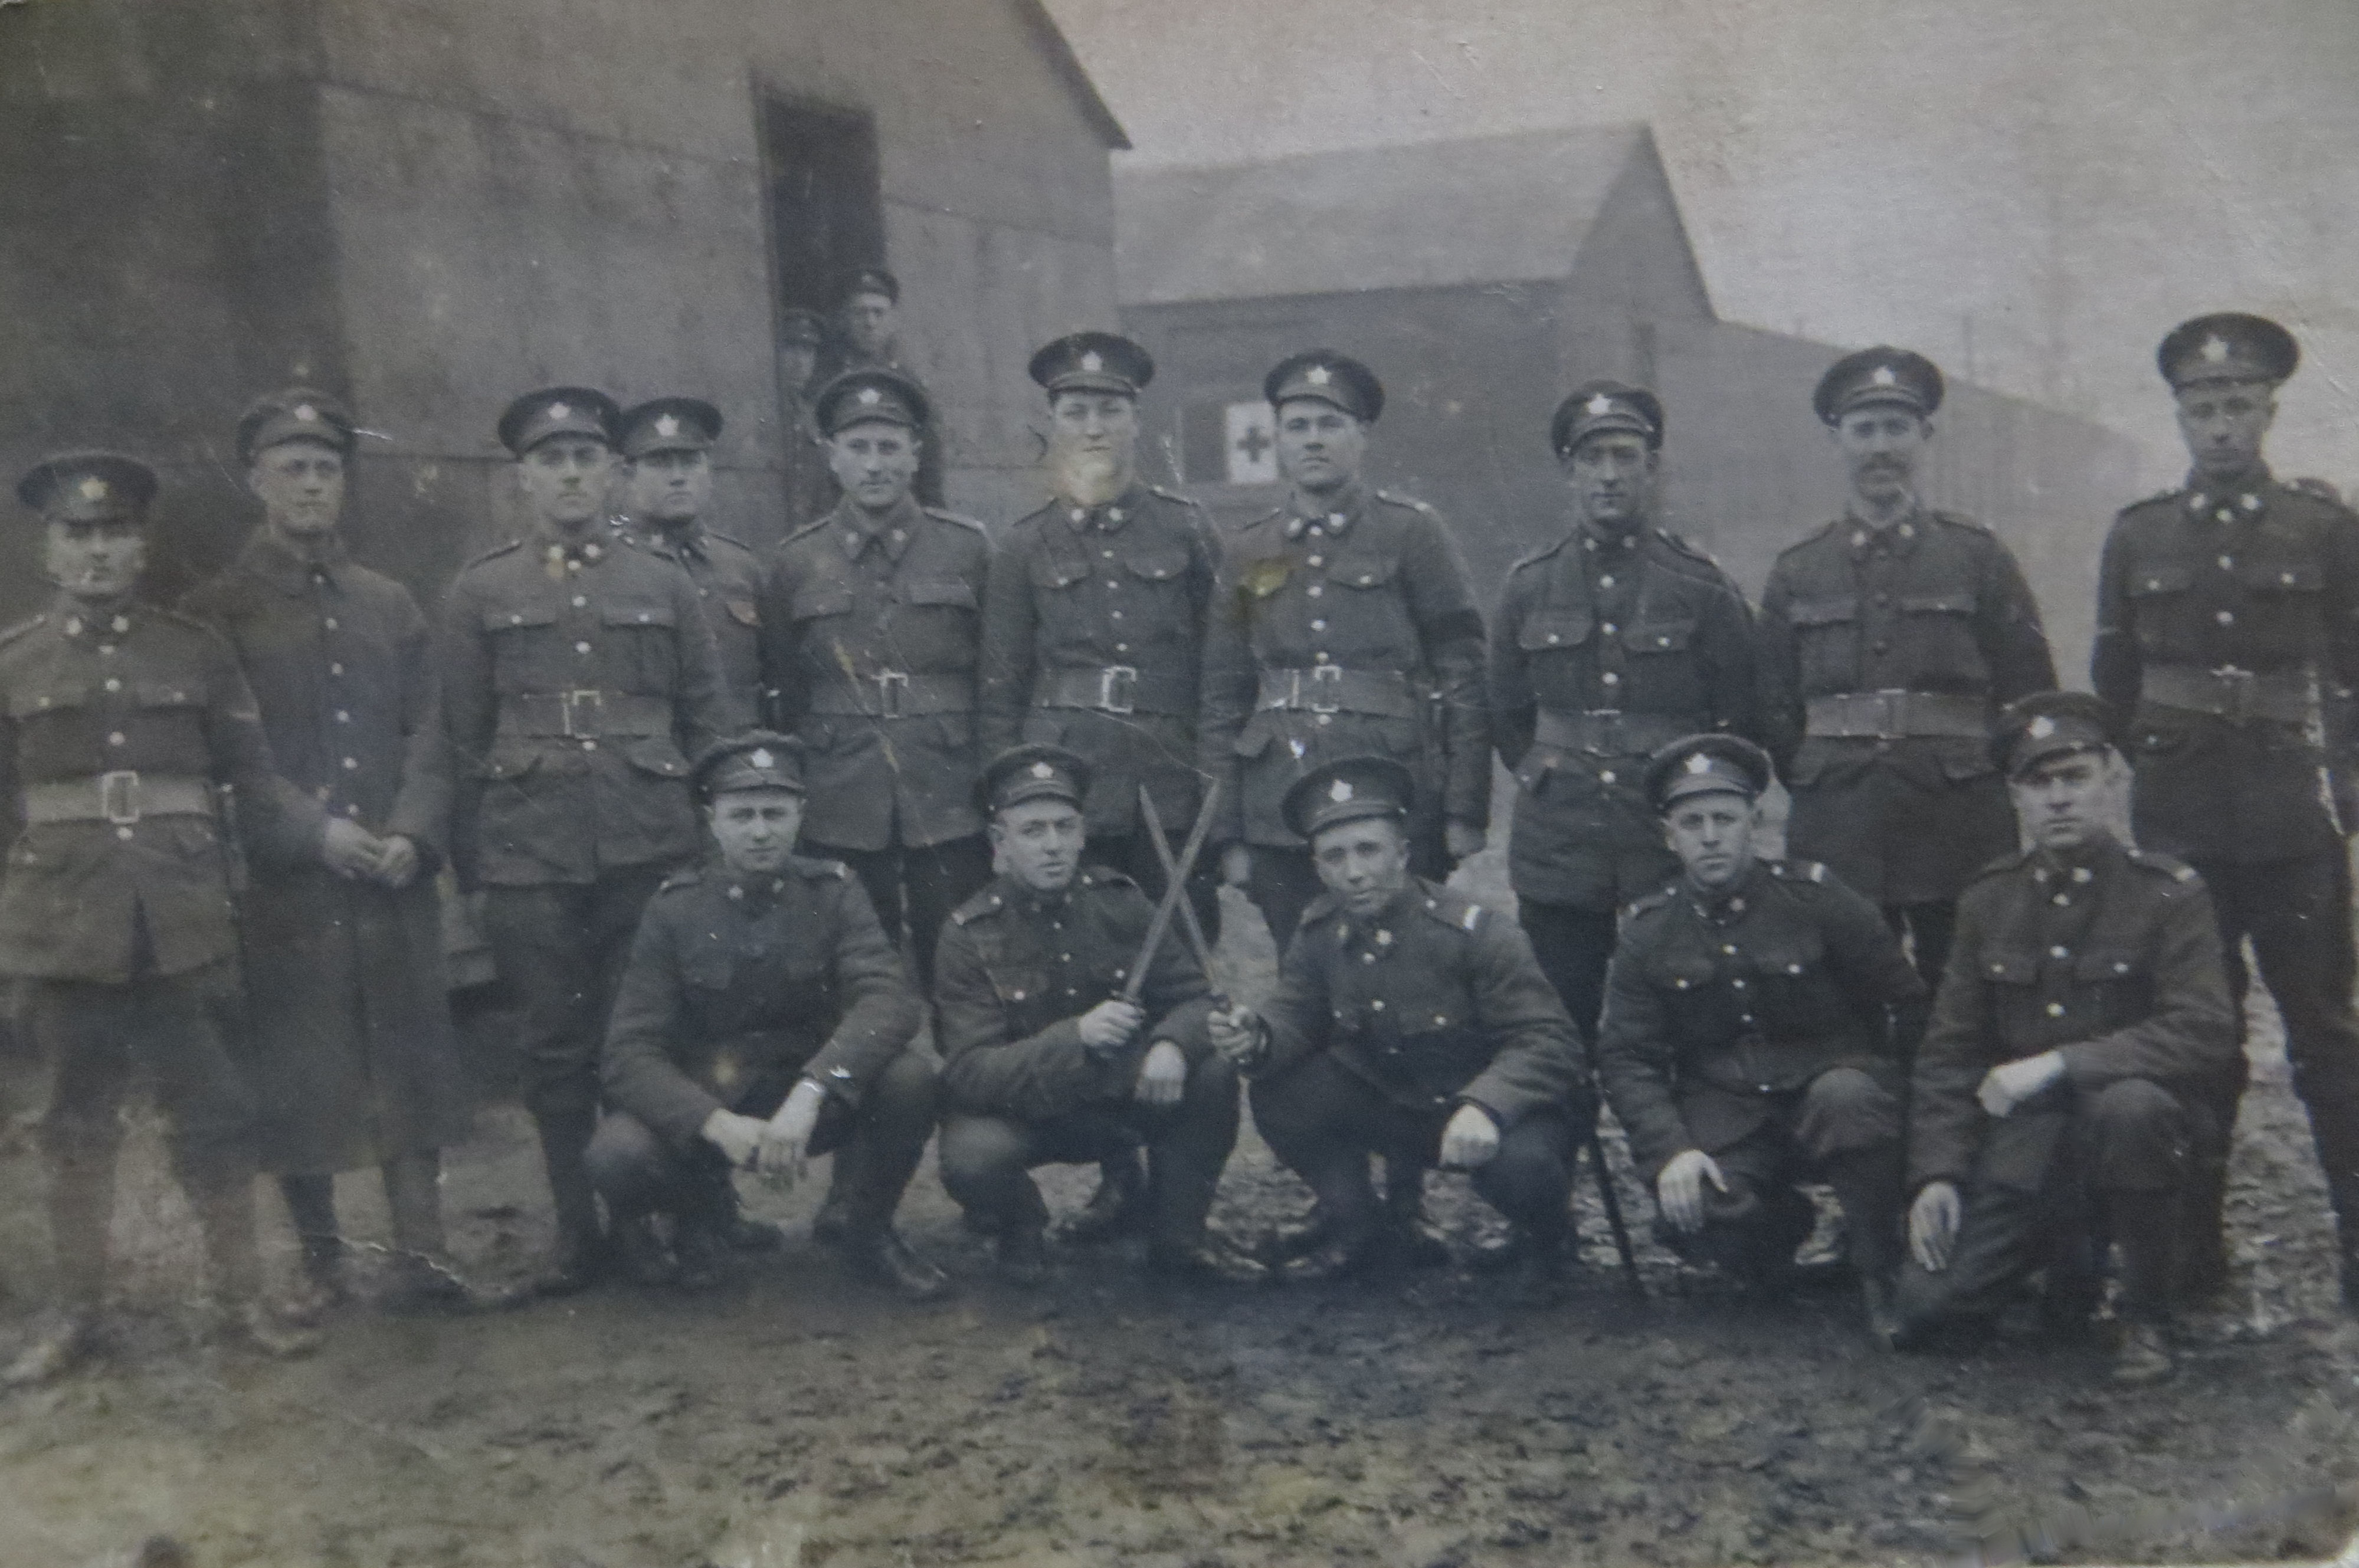 Group Photo– Wilfrid Blais in long coat, possibly in England WW1, 2nd from left.